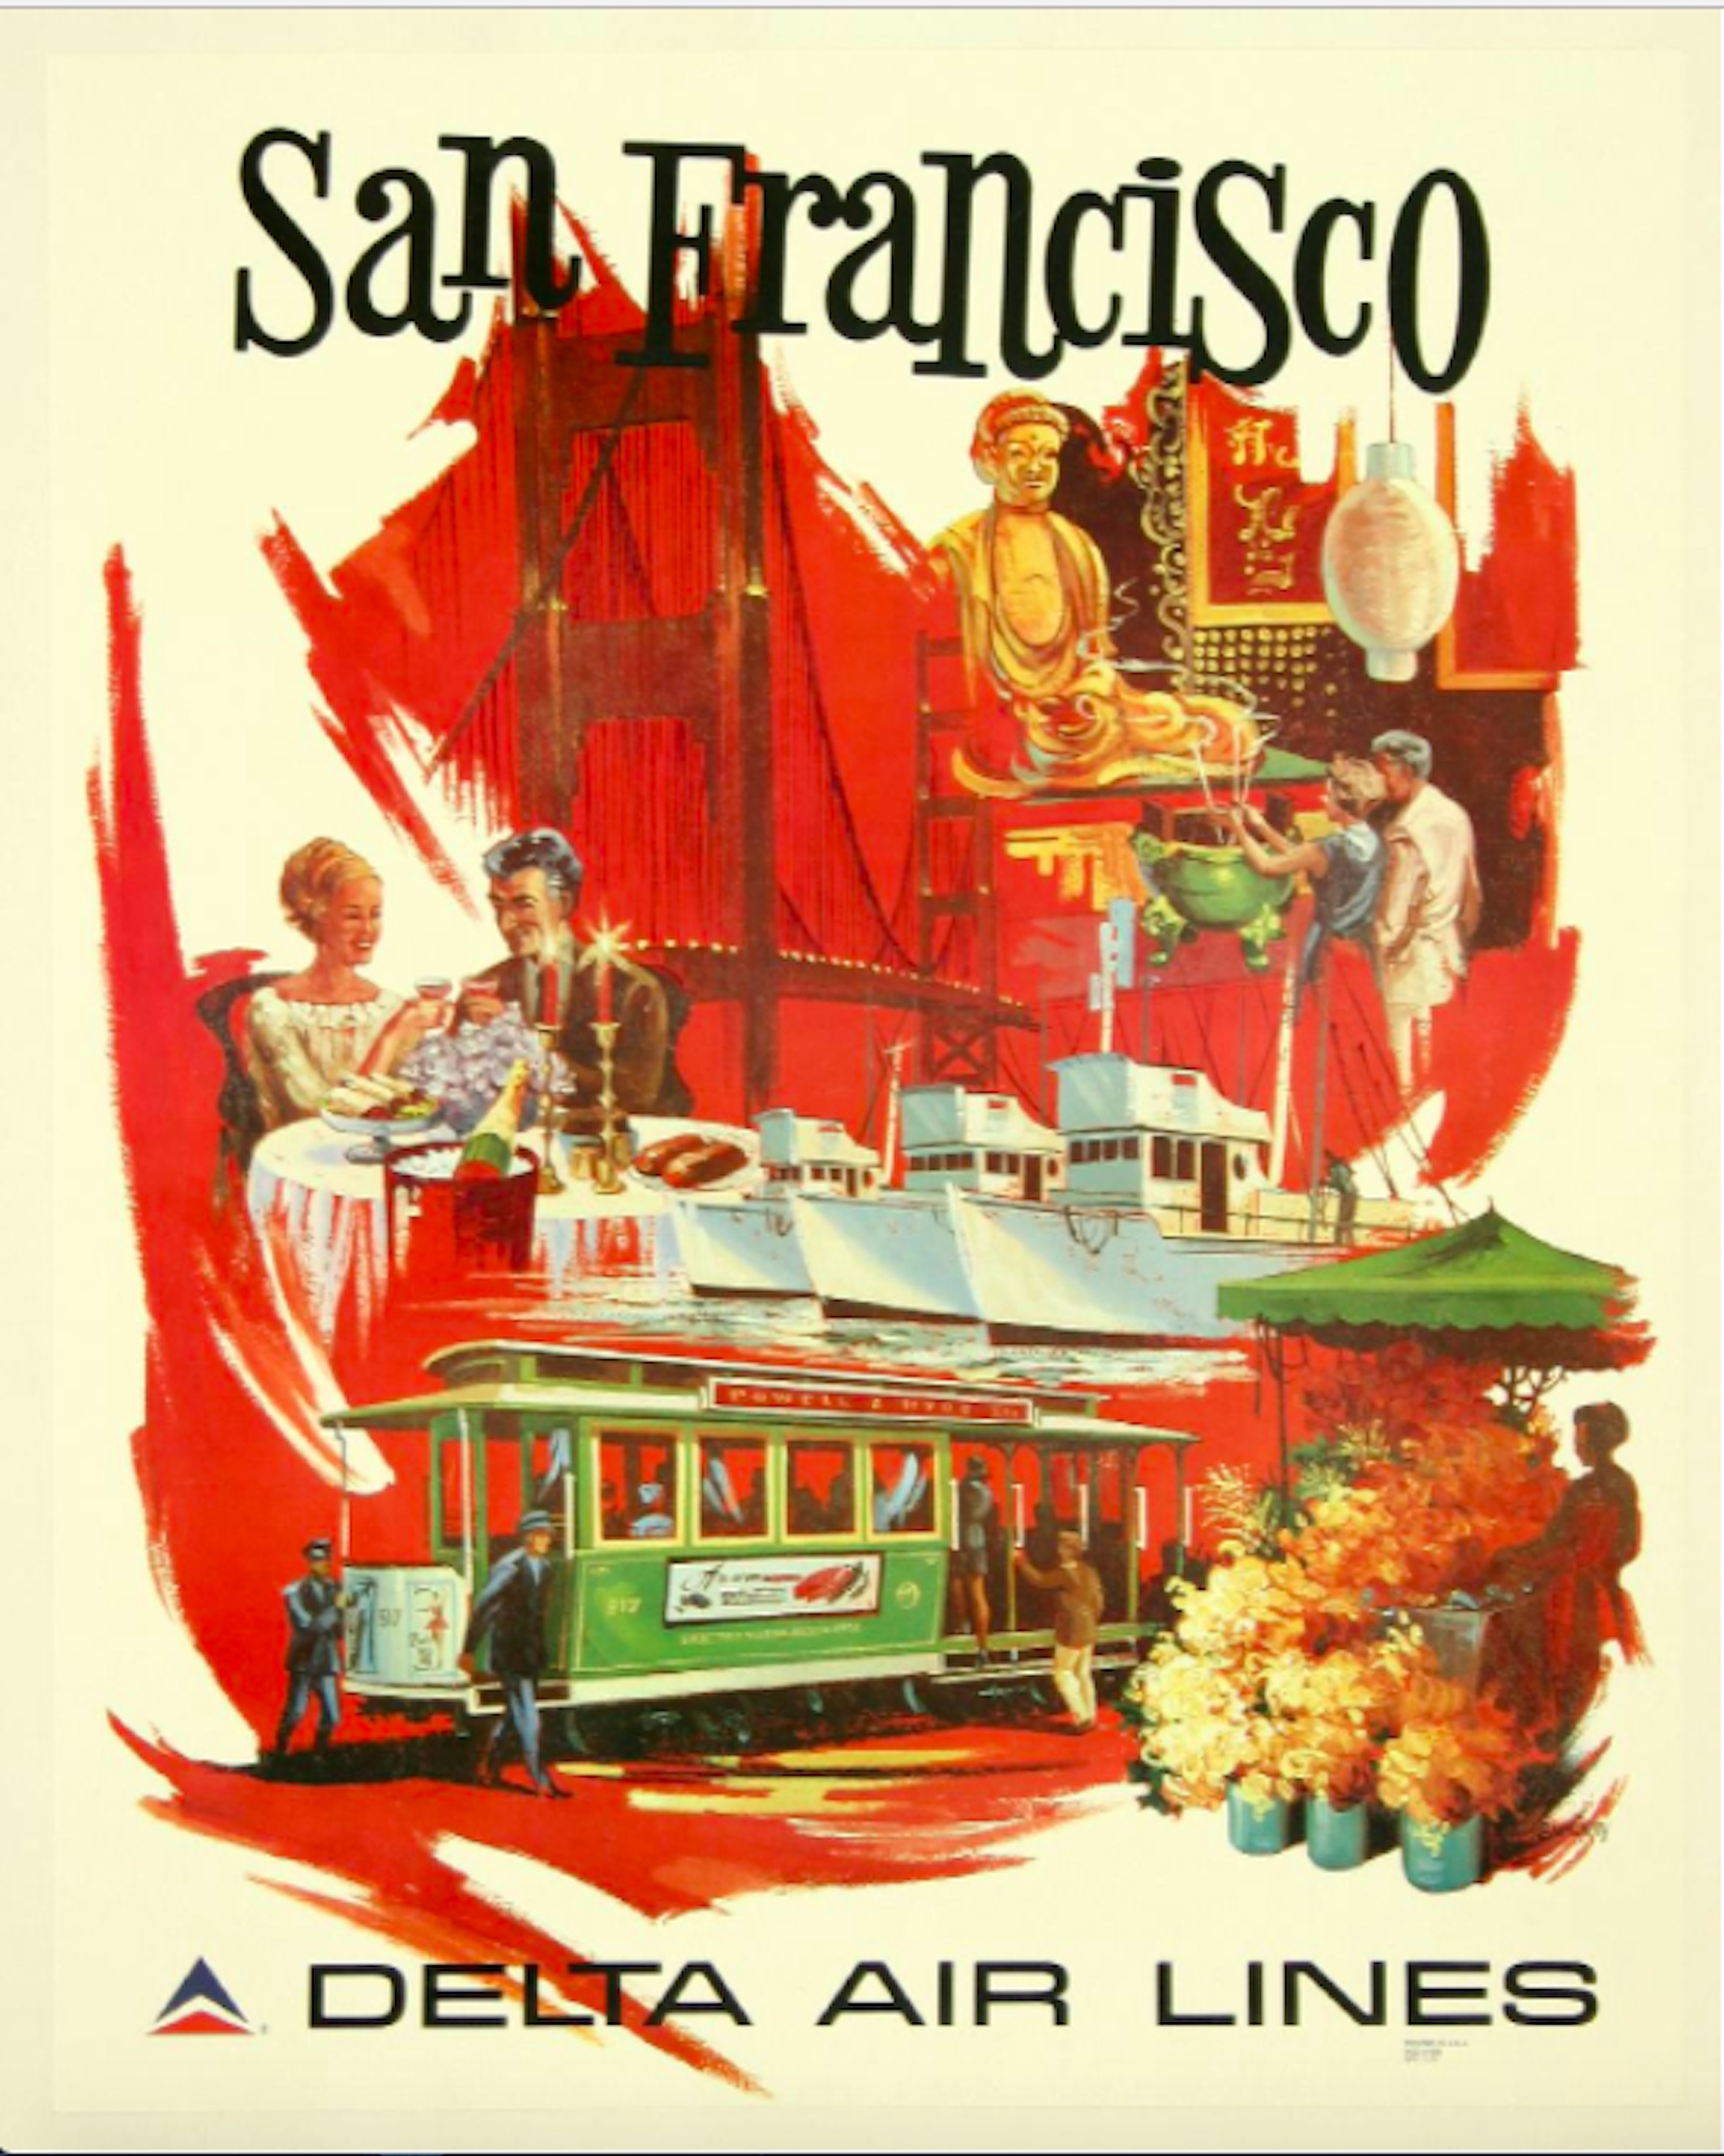 10 Vintage Airline Posters That Will Make You Wish You